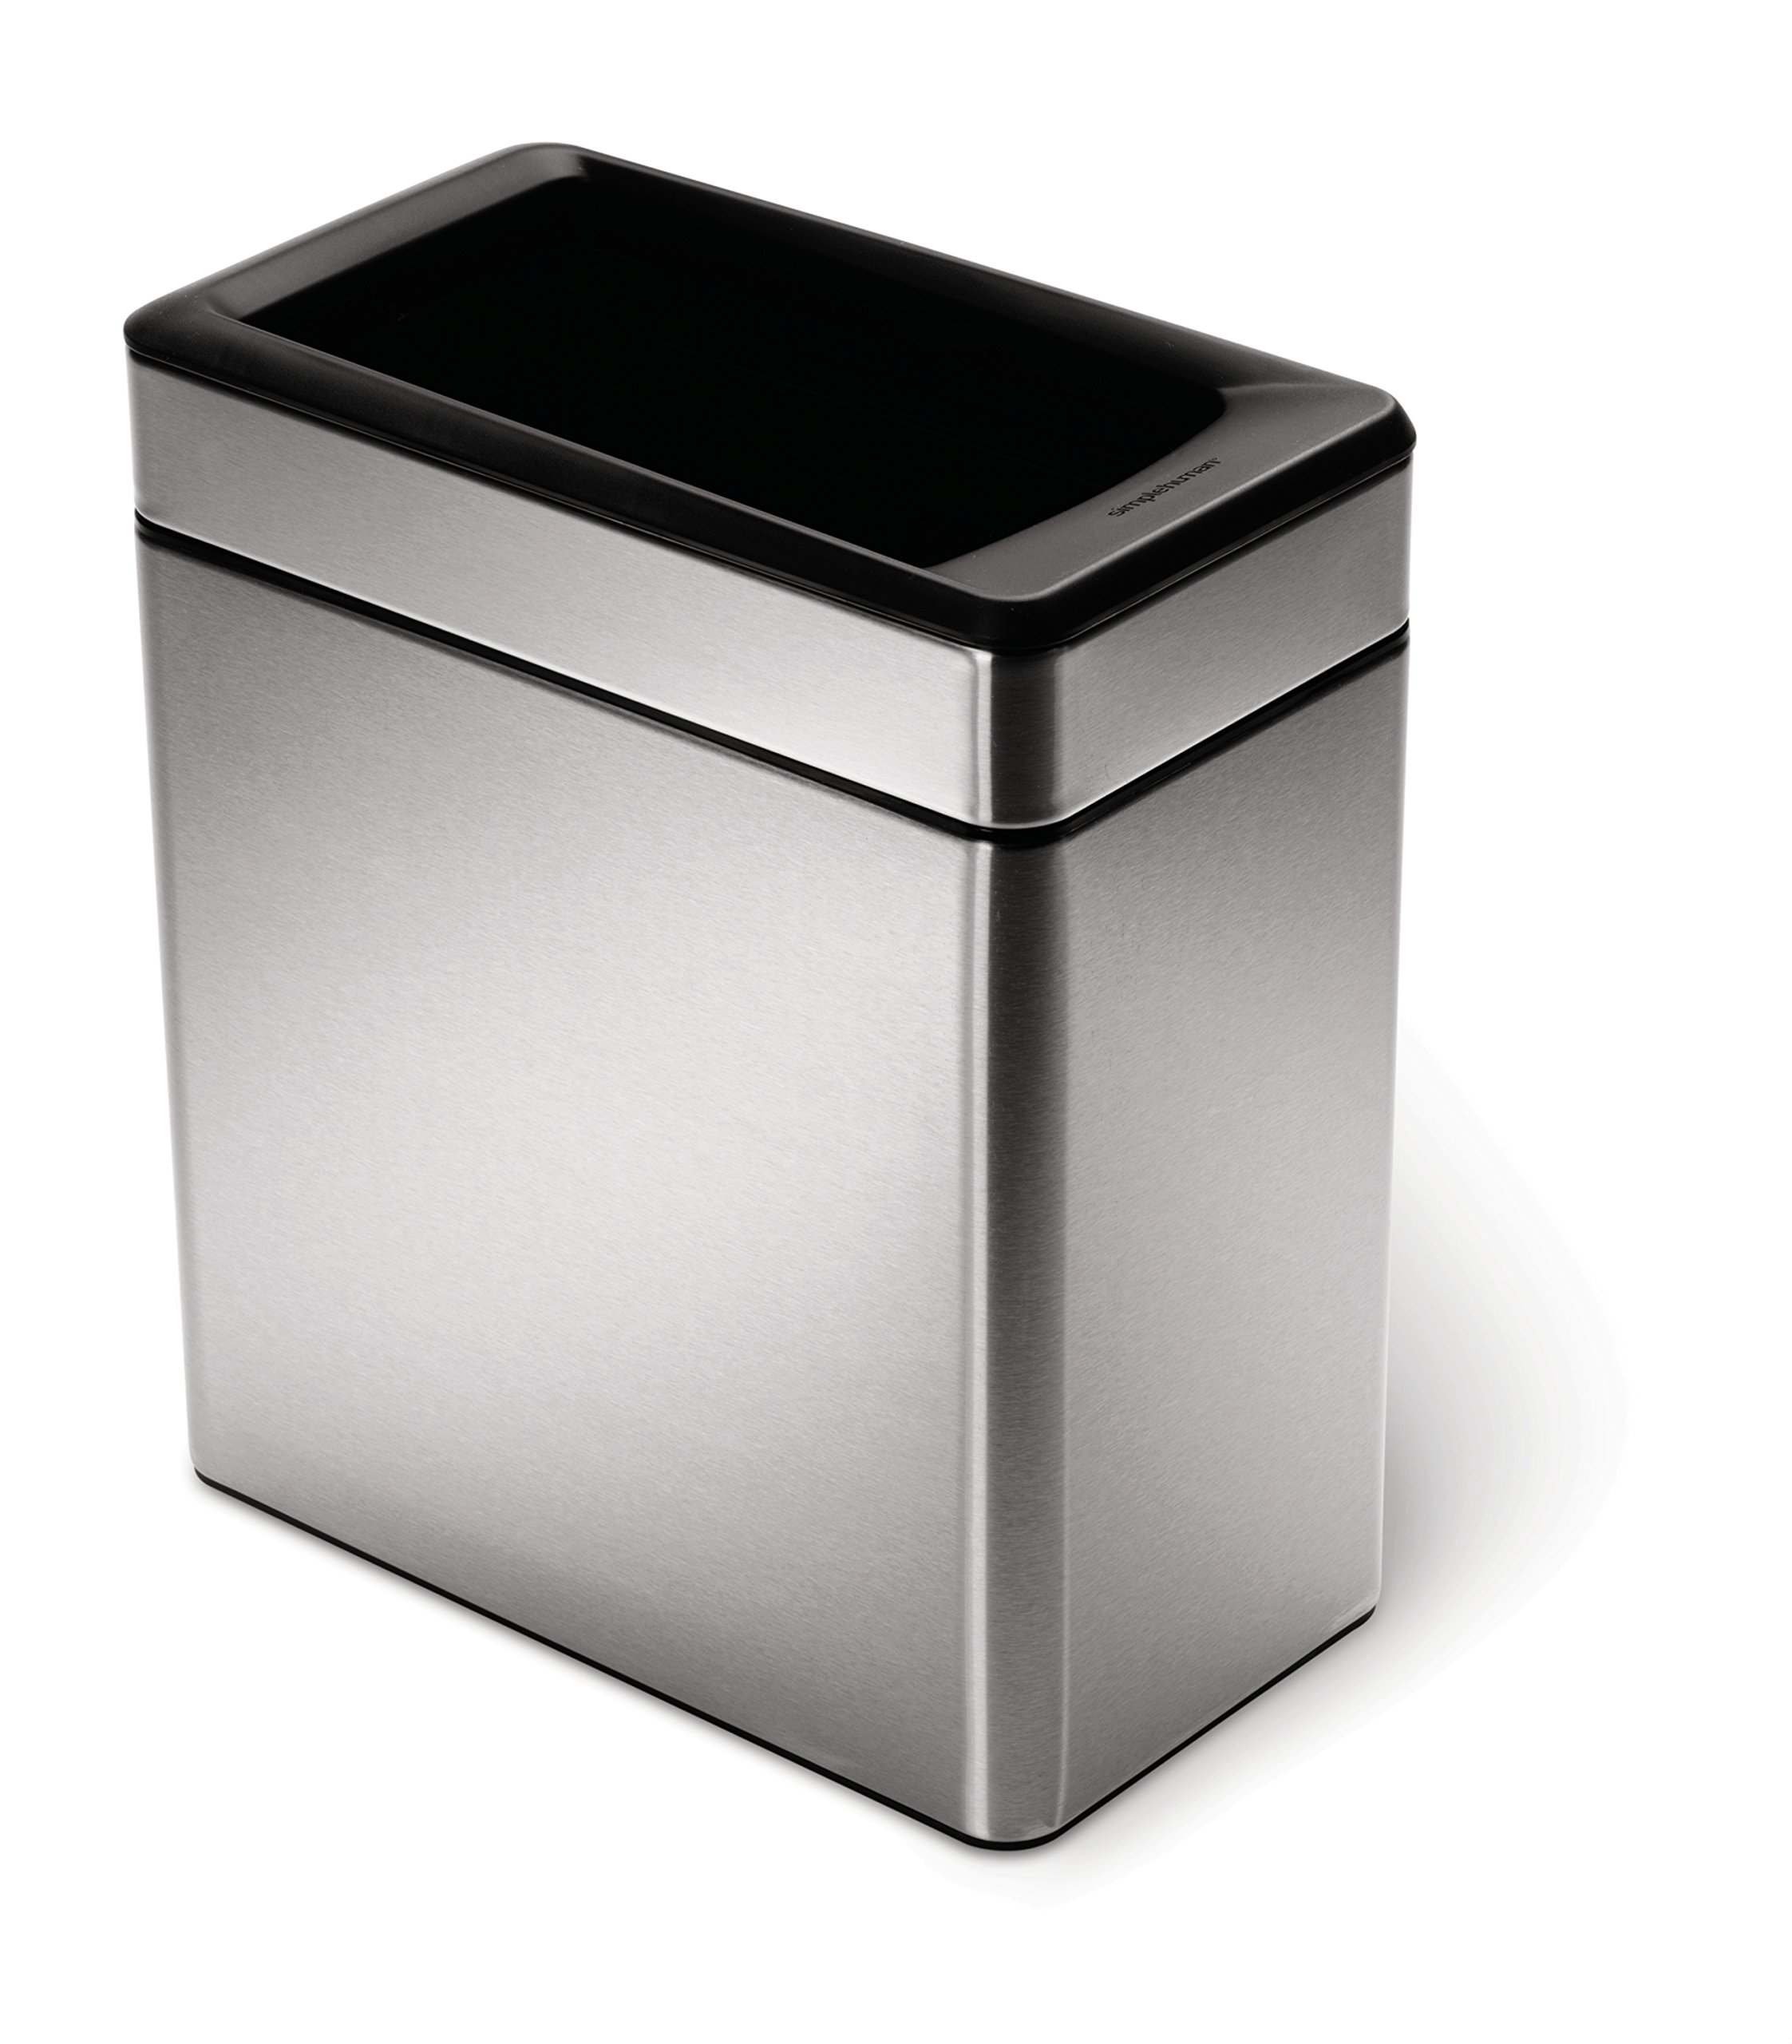 simplehuman 10 Liter / 2.6 Gallon Profile Open Trash Can, Brushed Stainless Steel by simplehuman